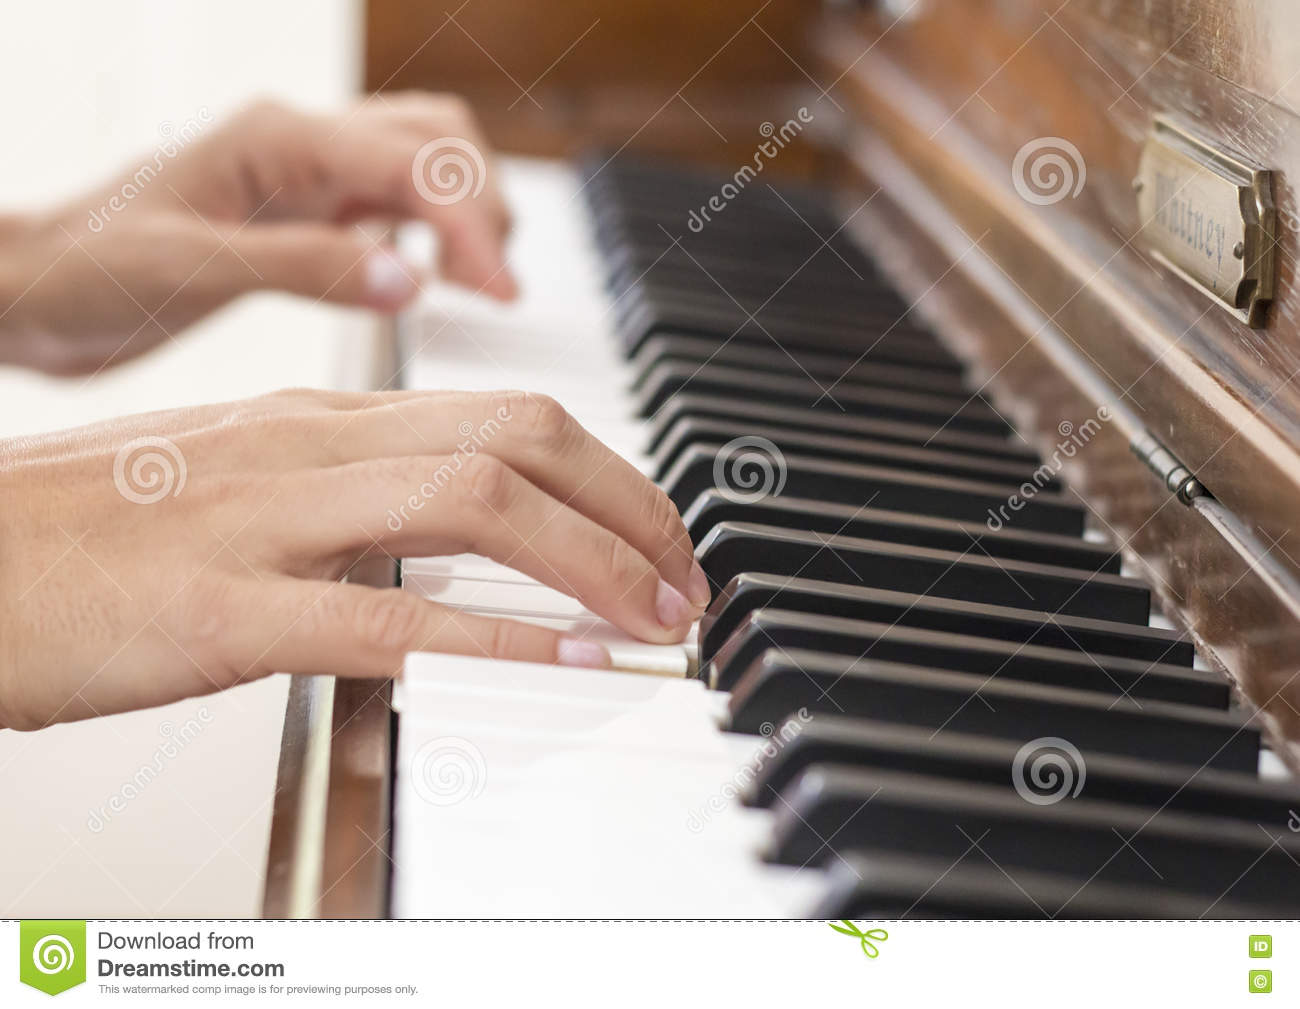 Hands of a musician playing a vintage wooden piano